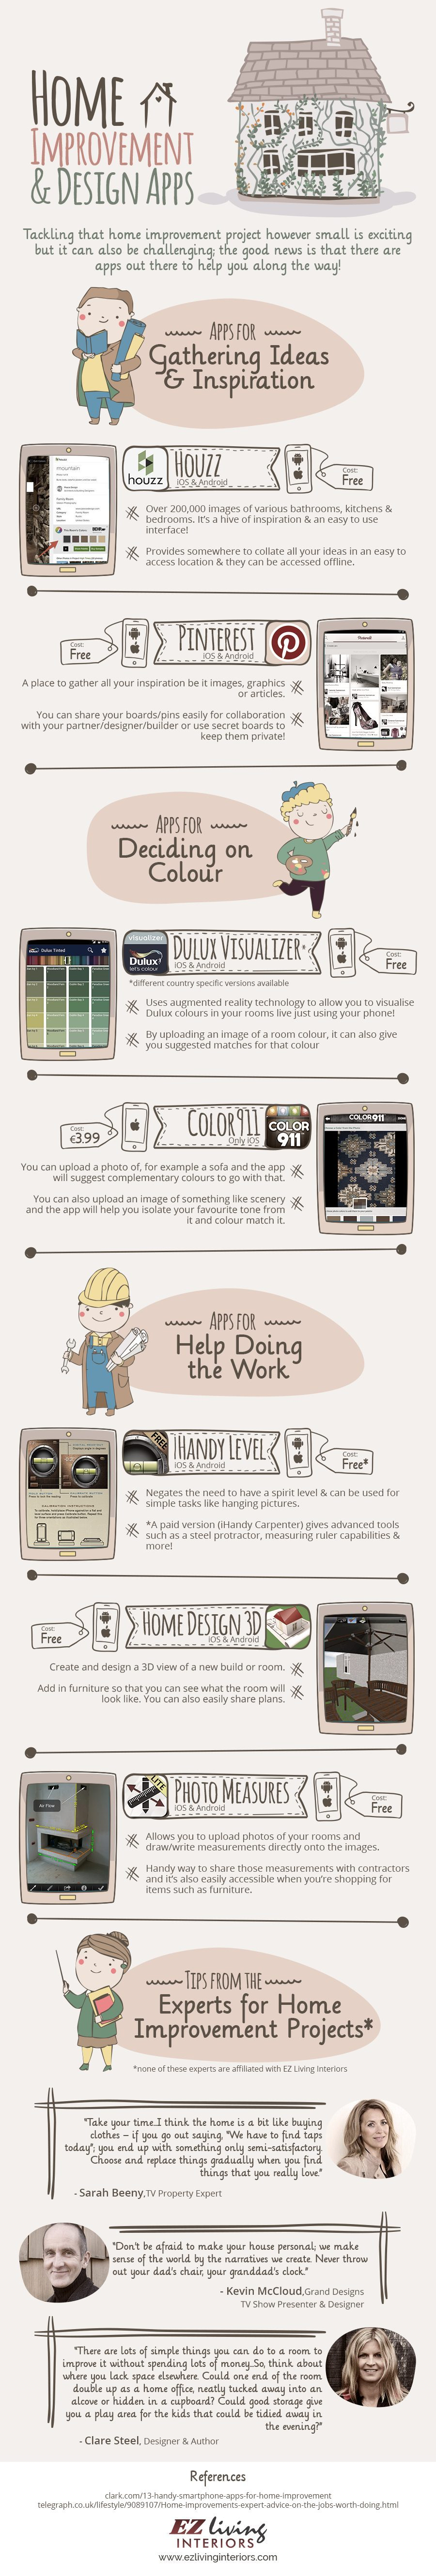 Home Improvement Apps - Infographic - Do It Yourself Apps Latest Posts  Home Improvements Infographic